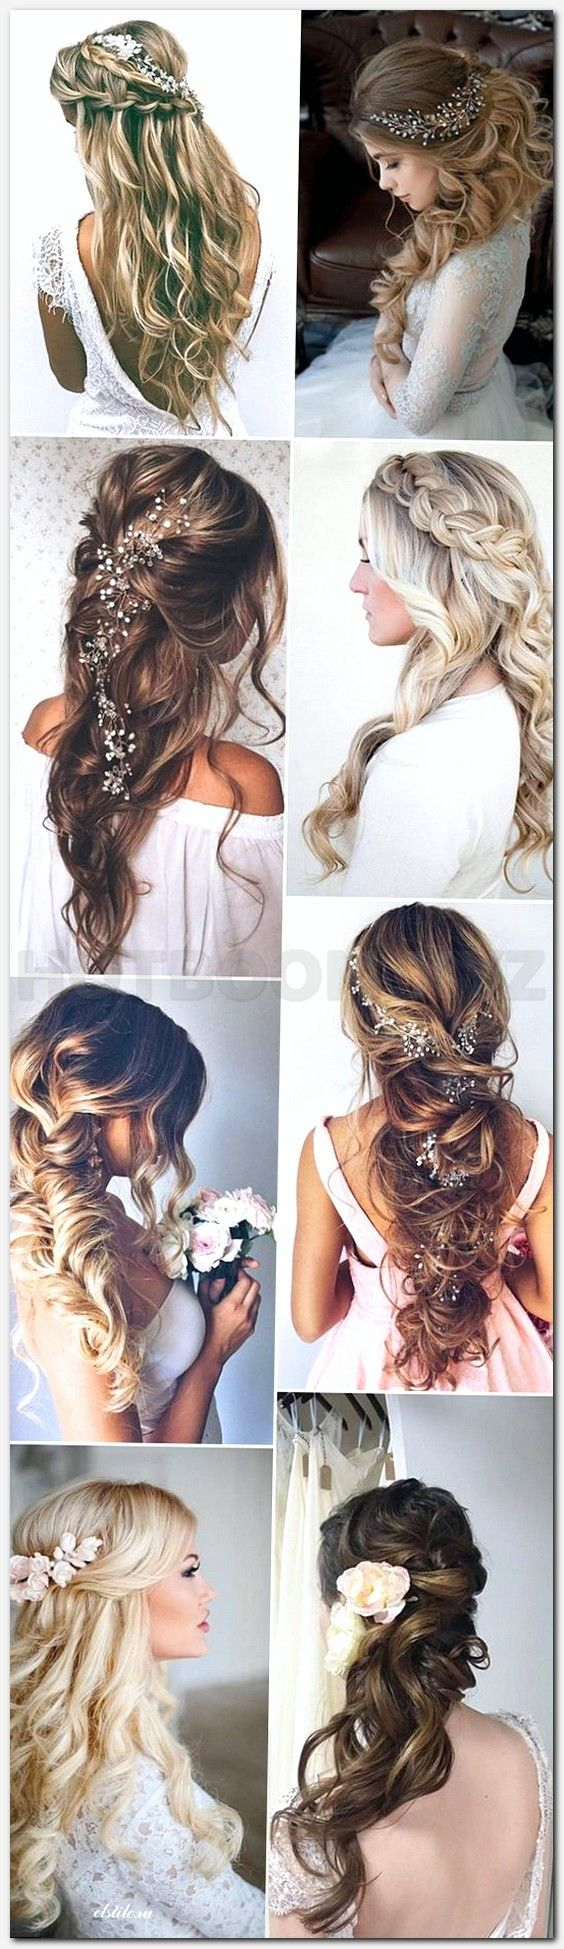 actor haircuts, new simple and easy hairstyles, short haircuts for thin hair, hair styles com, simple and beautiful hairstyles for short hair, best new hairstyles 2017, toddler boy haircuts 2017, stylish haircuts for men, new and easy hairstyles, summer hairstyles for round faces, hair for circle face, latest short hair cuts, womans hair style, photos of curly hairstyles, blush hair salon, hairstyles for long hair and round face